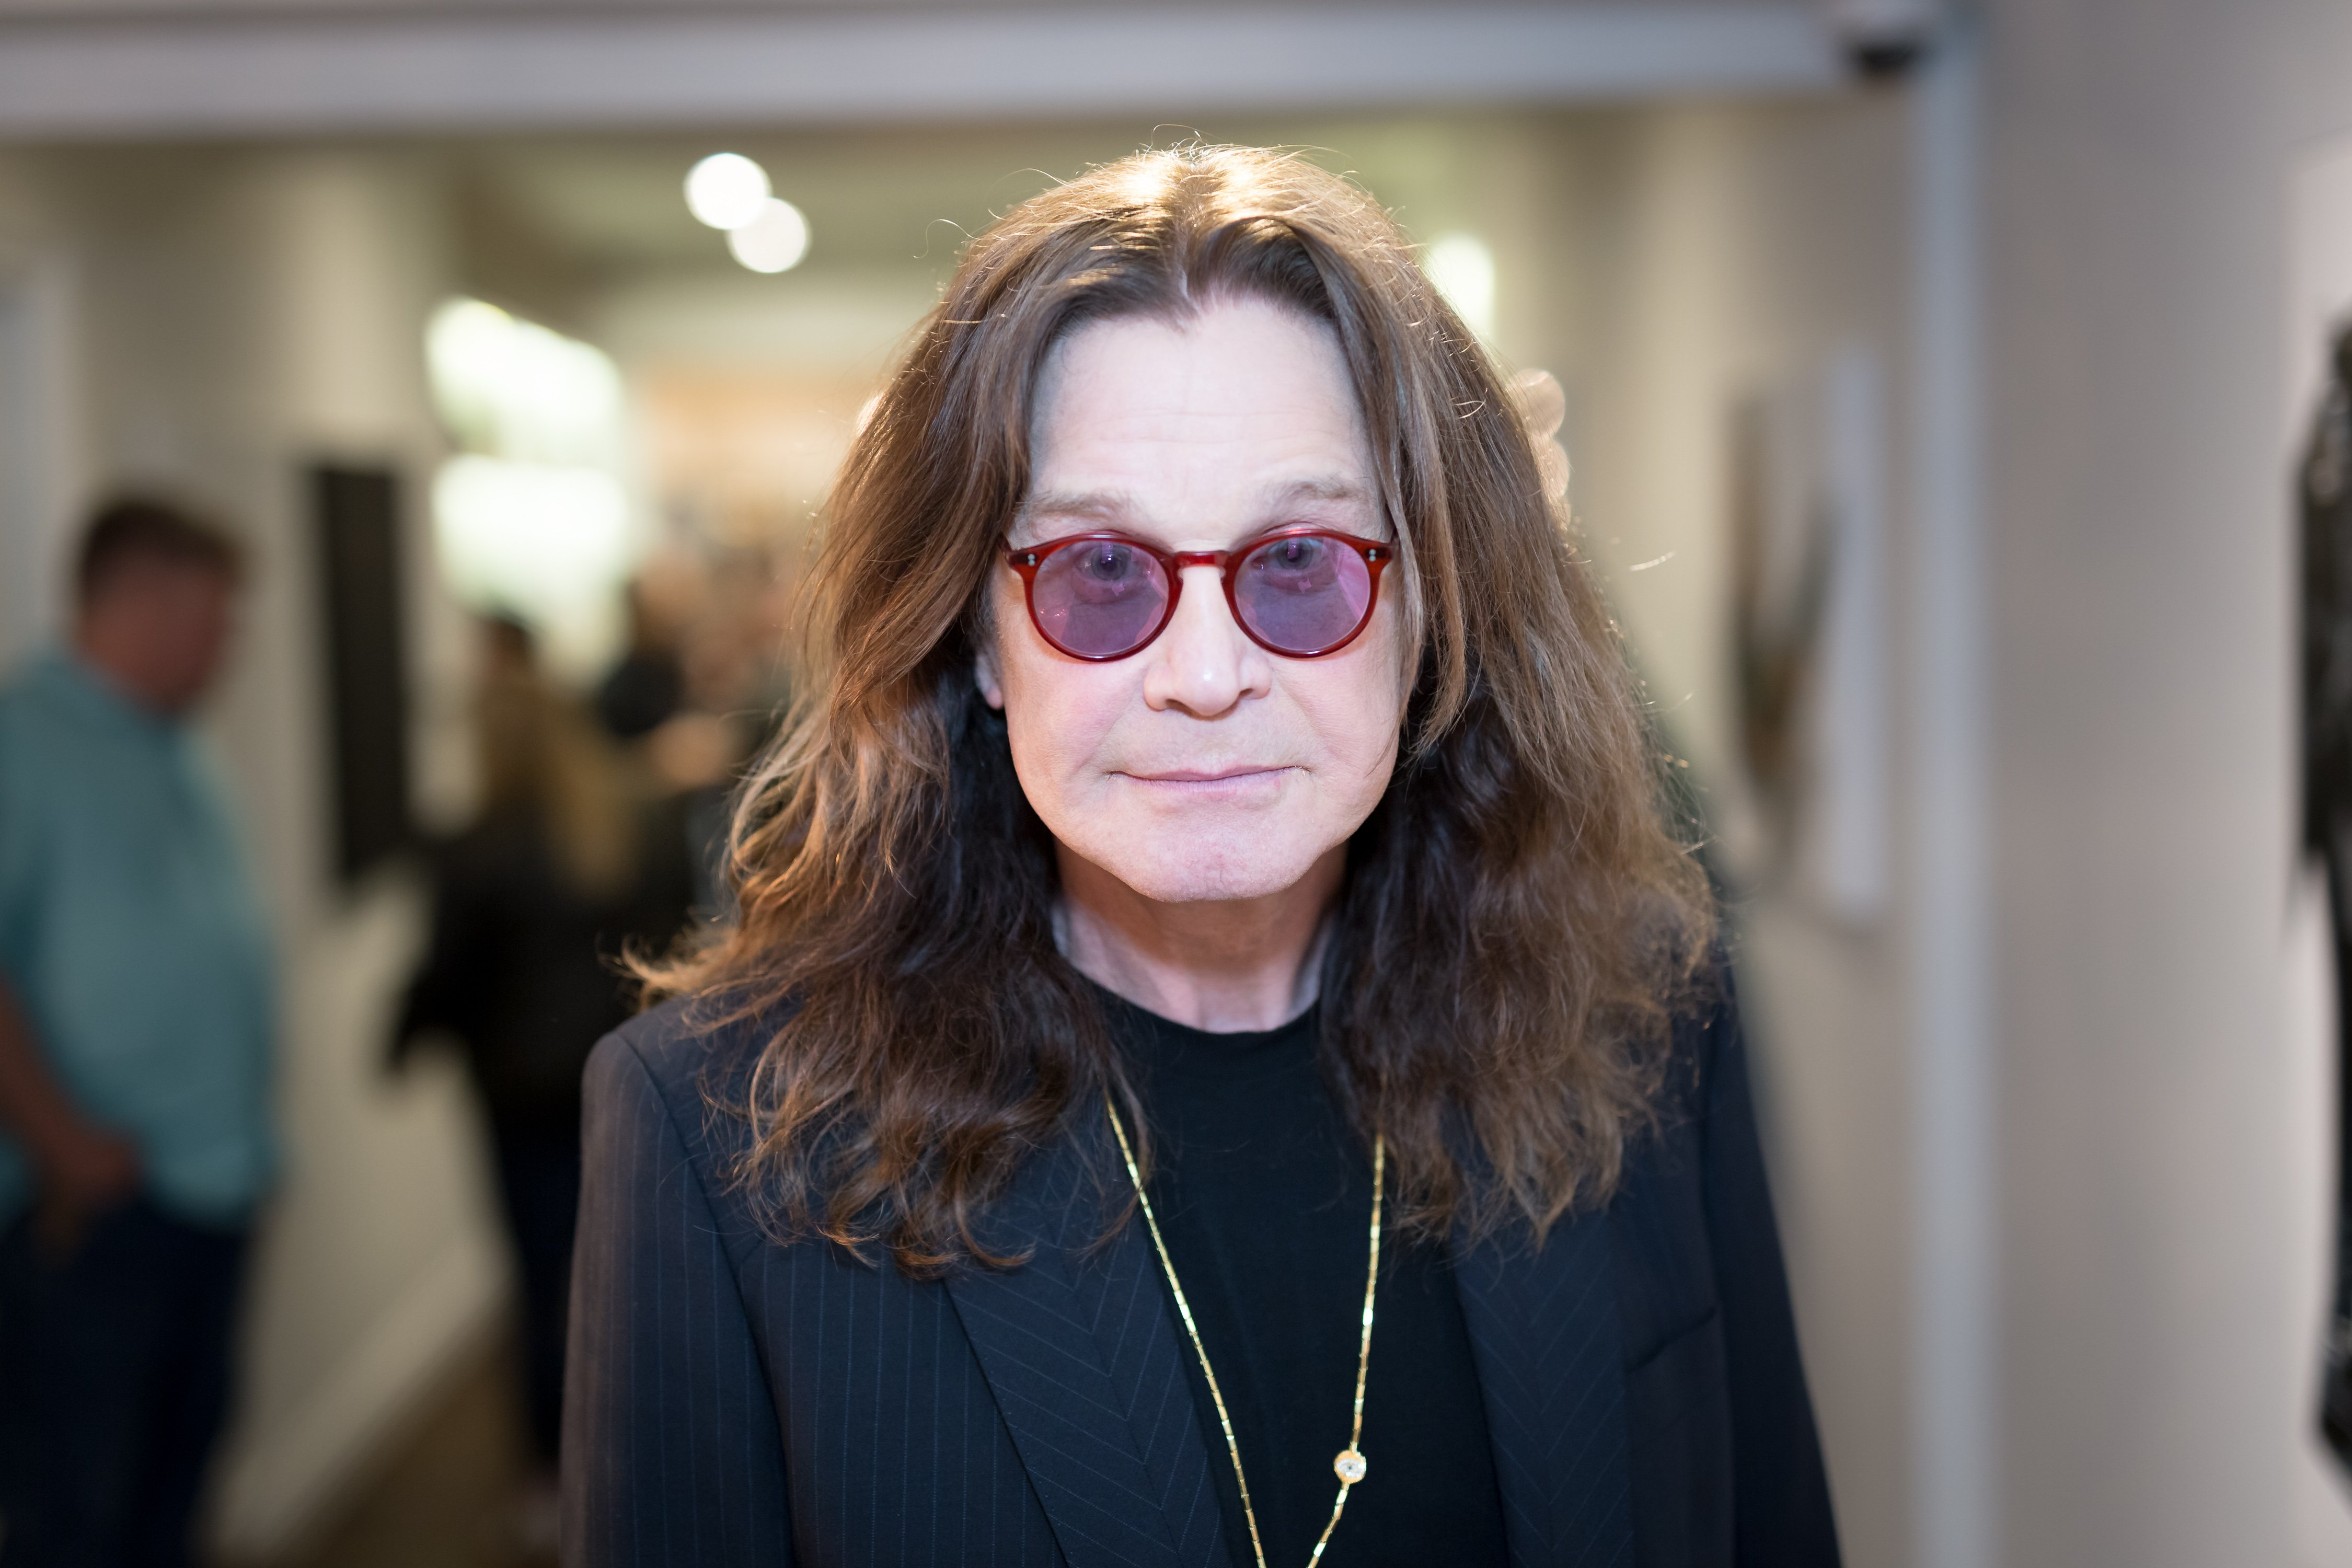 Singer Ozzy Osbourne attends the Billy Morrison - Aude Somnia Solo Exhibition at Elisabeth Weinstock on September 28, 2017, in Los Angeles, California. | Source: Getty Images.